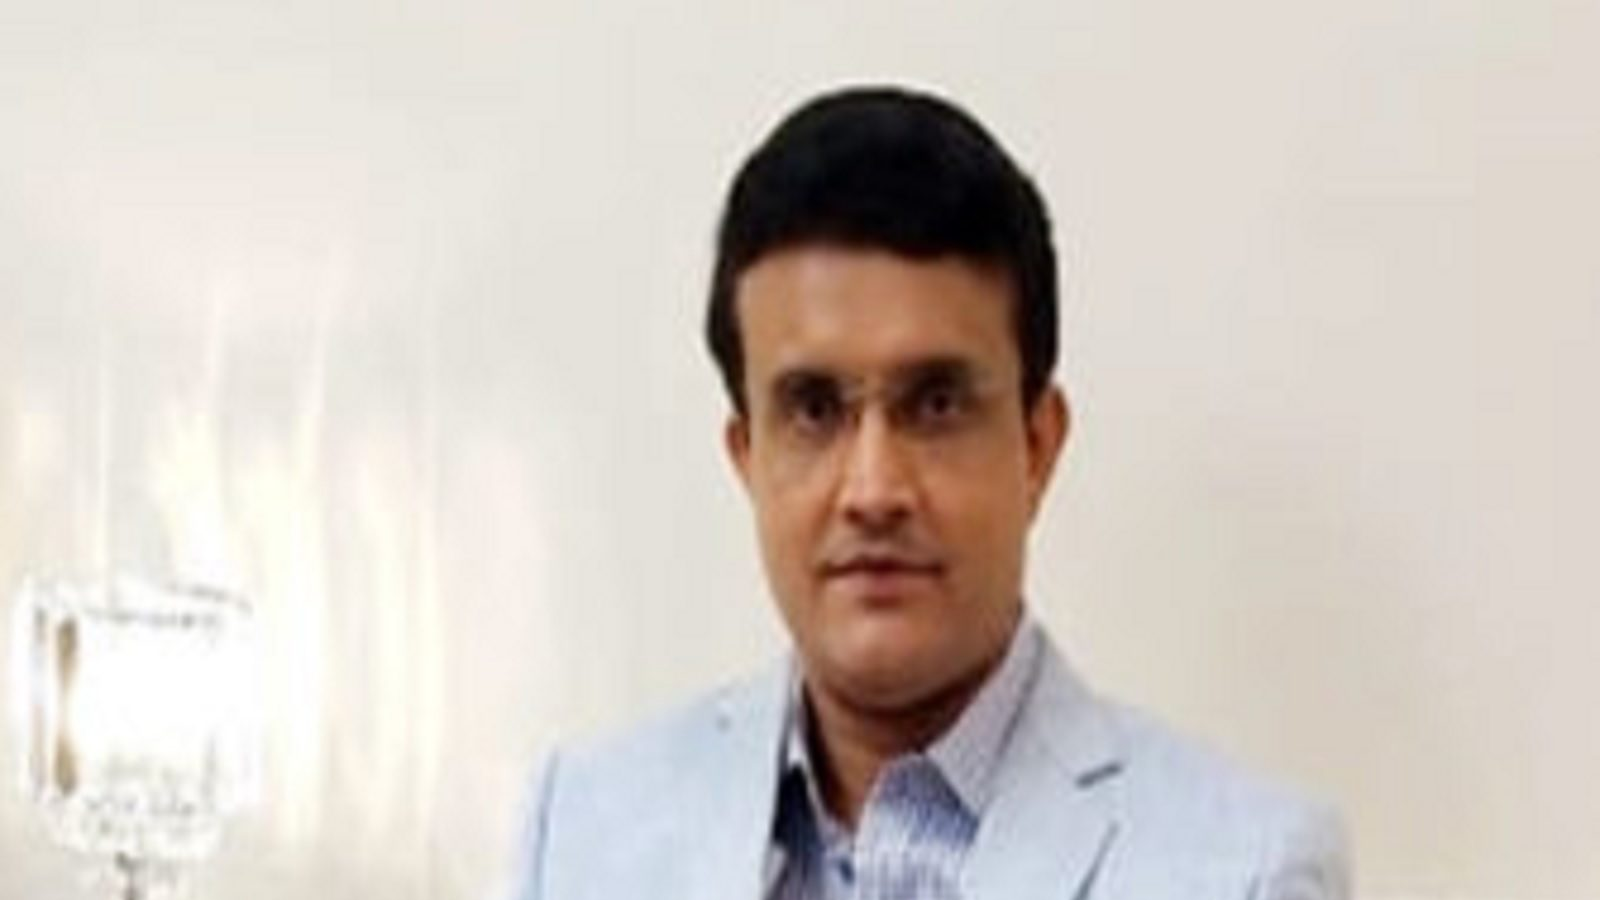 IPL T20 world Cup Sourav Ganguly biopic announced to be produced by Luv films